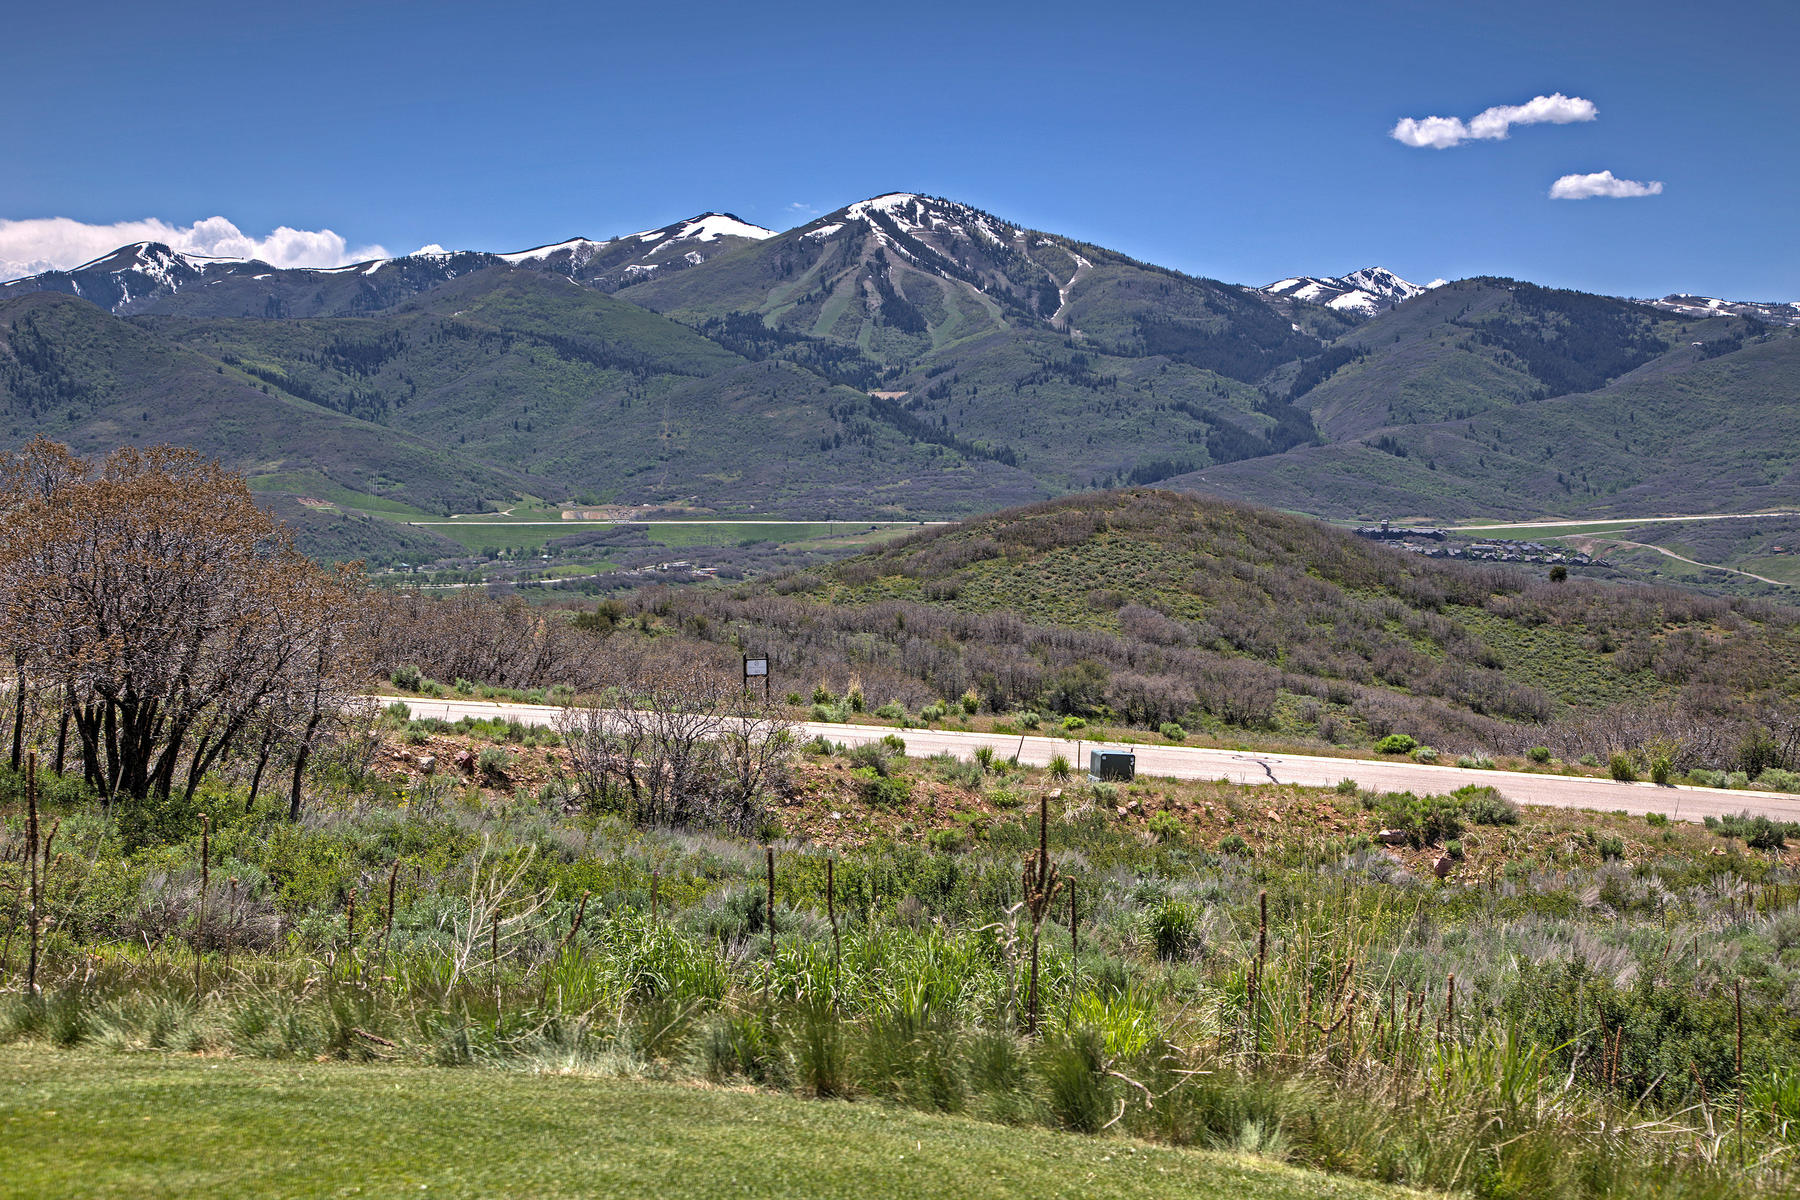 Land for Sale at Incomparable Deer Valley Views 1181 E Lasso Trl Lot 33 Heber, Utah 84032 United States